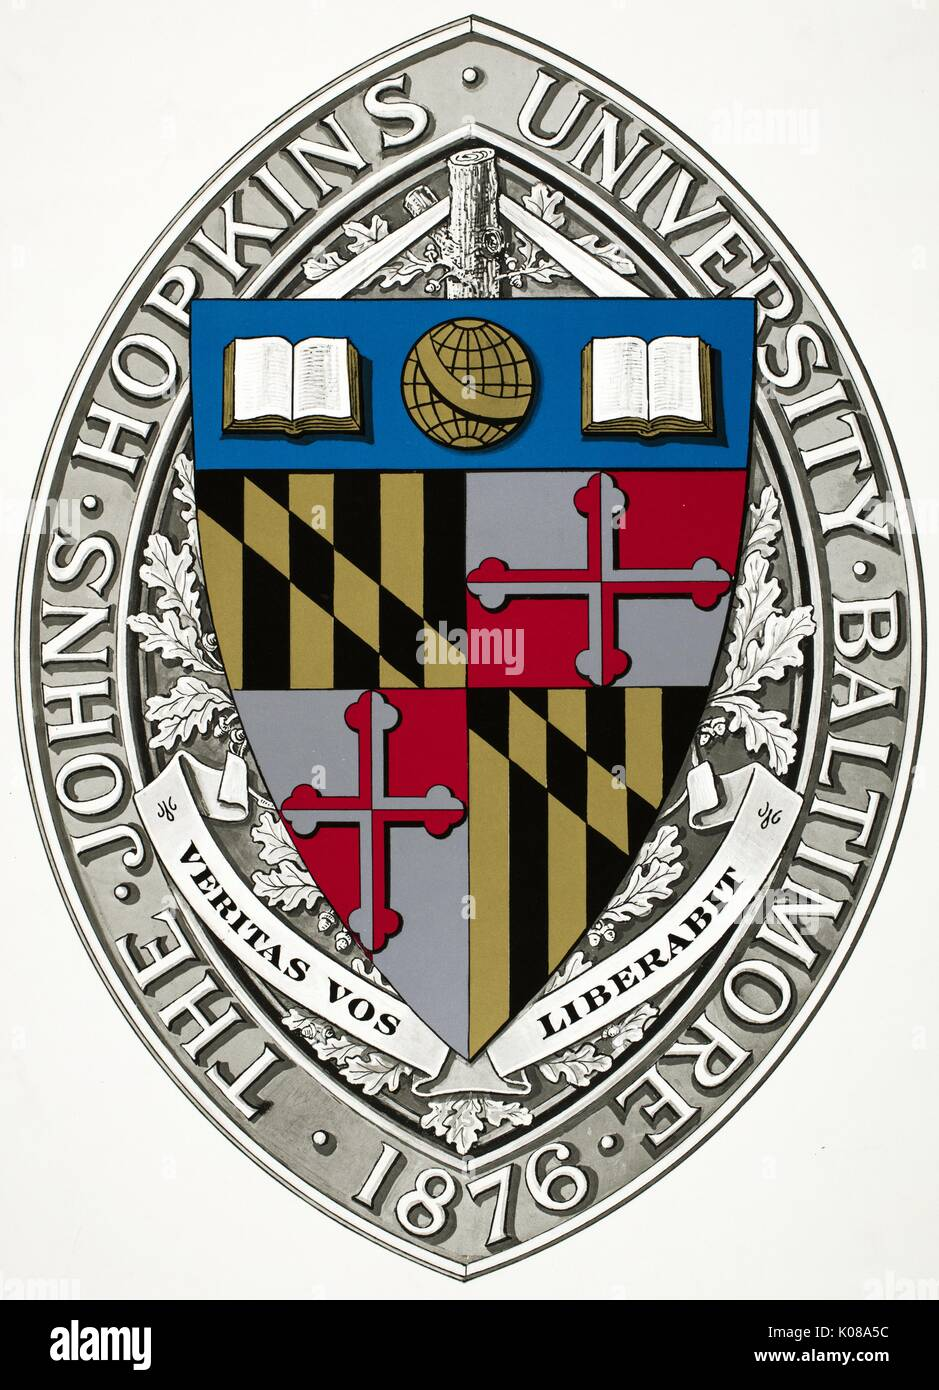 Print of the Johns Hopkins University seal, showing the motto 'Veritas vos liberabit, ' the founding date 1876, and various academic iconography, 1911. - Stock Image